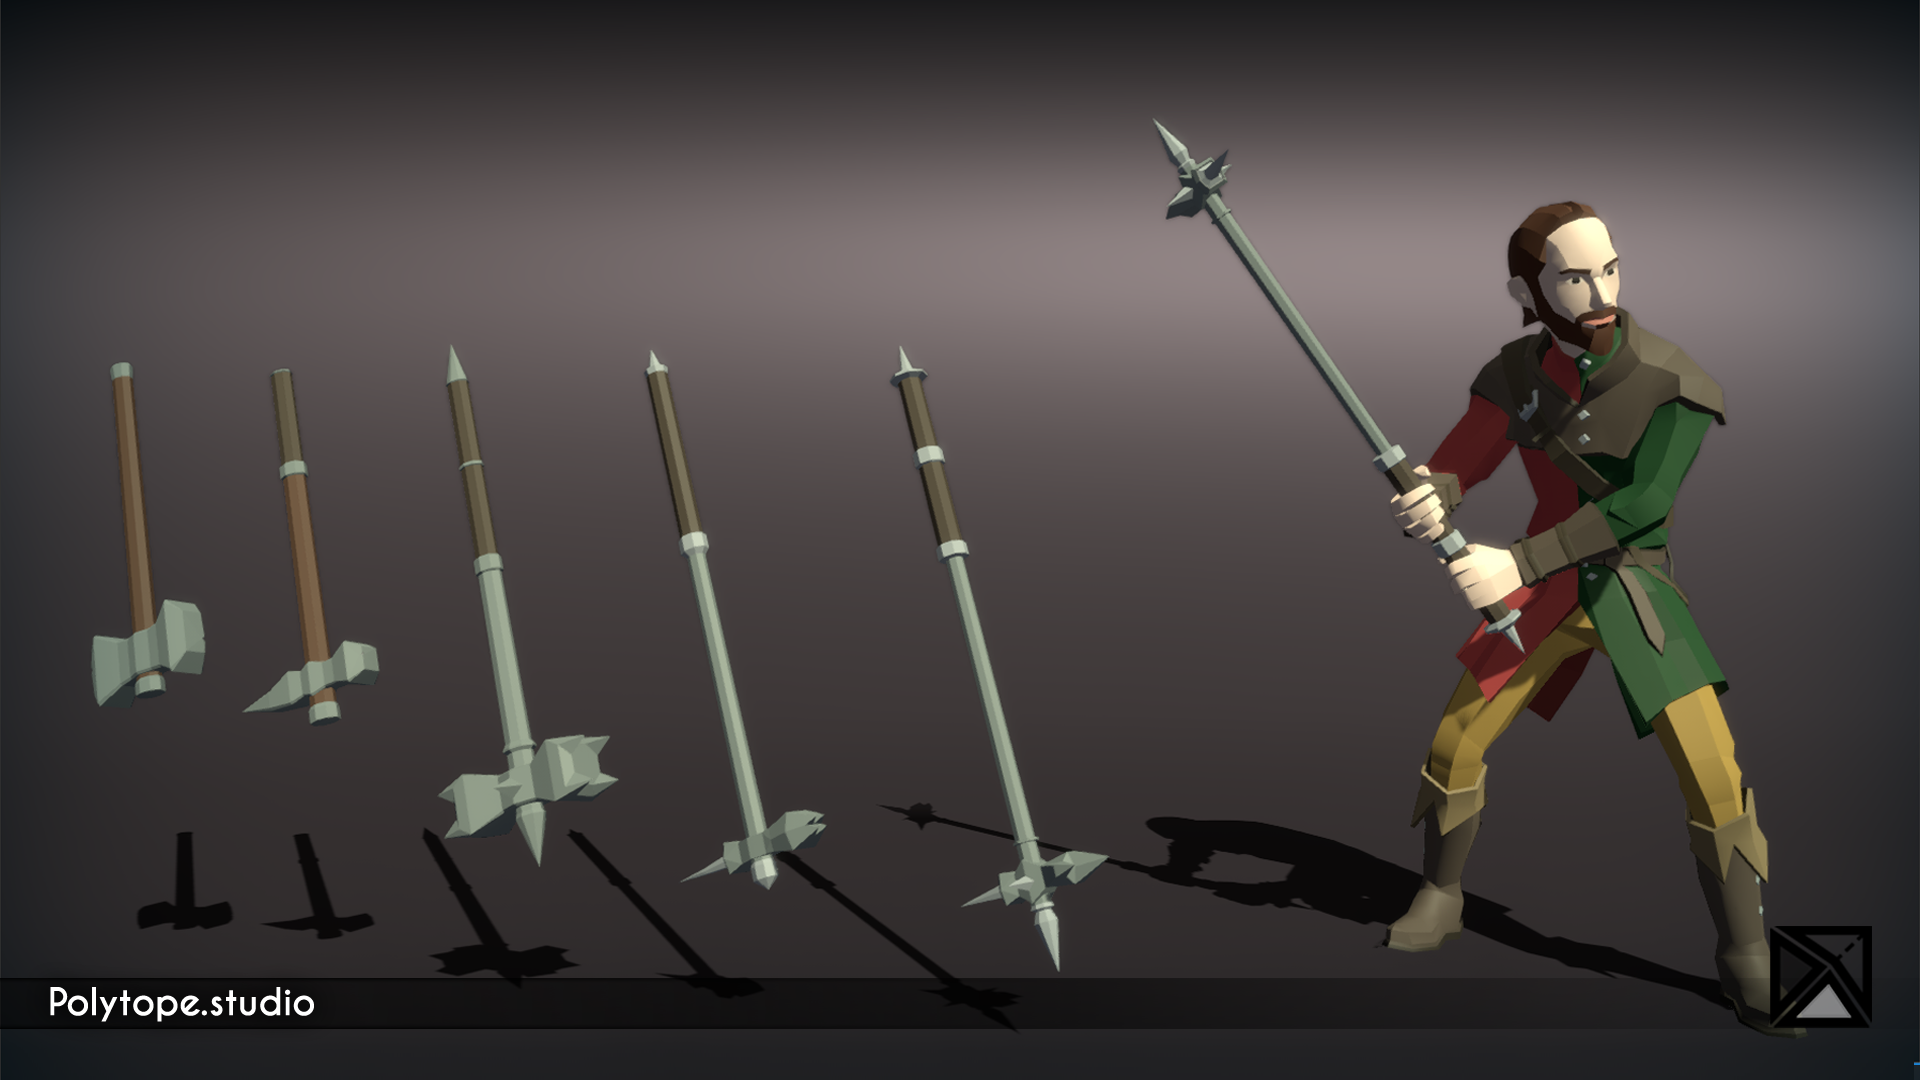 PT_Medieval_Lowpoly_Weapons_Warhammer.png